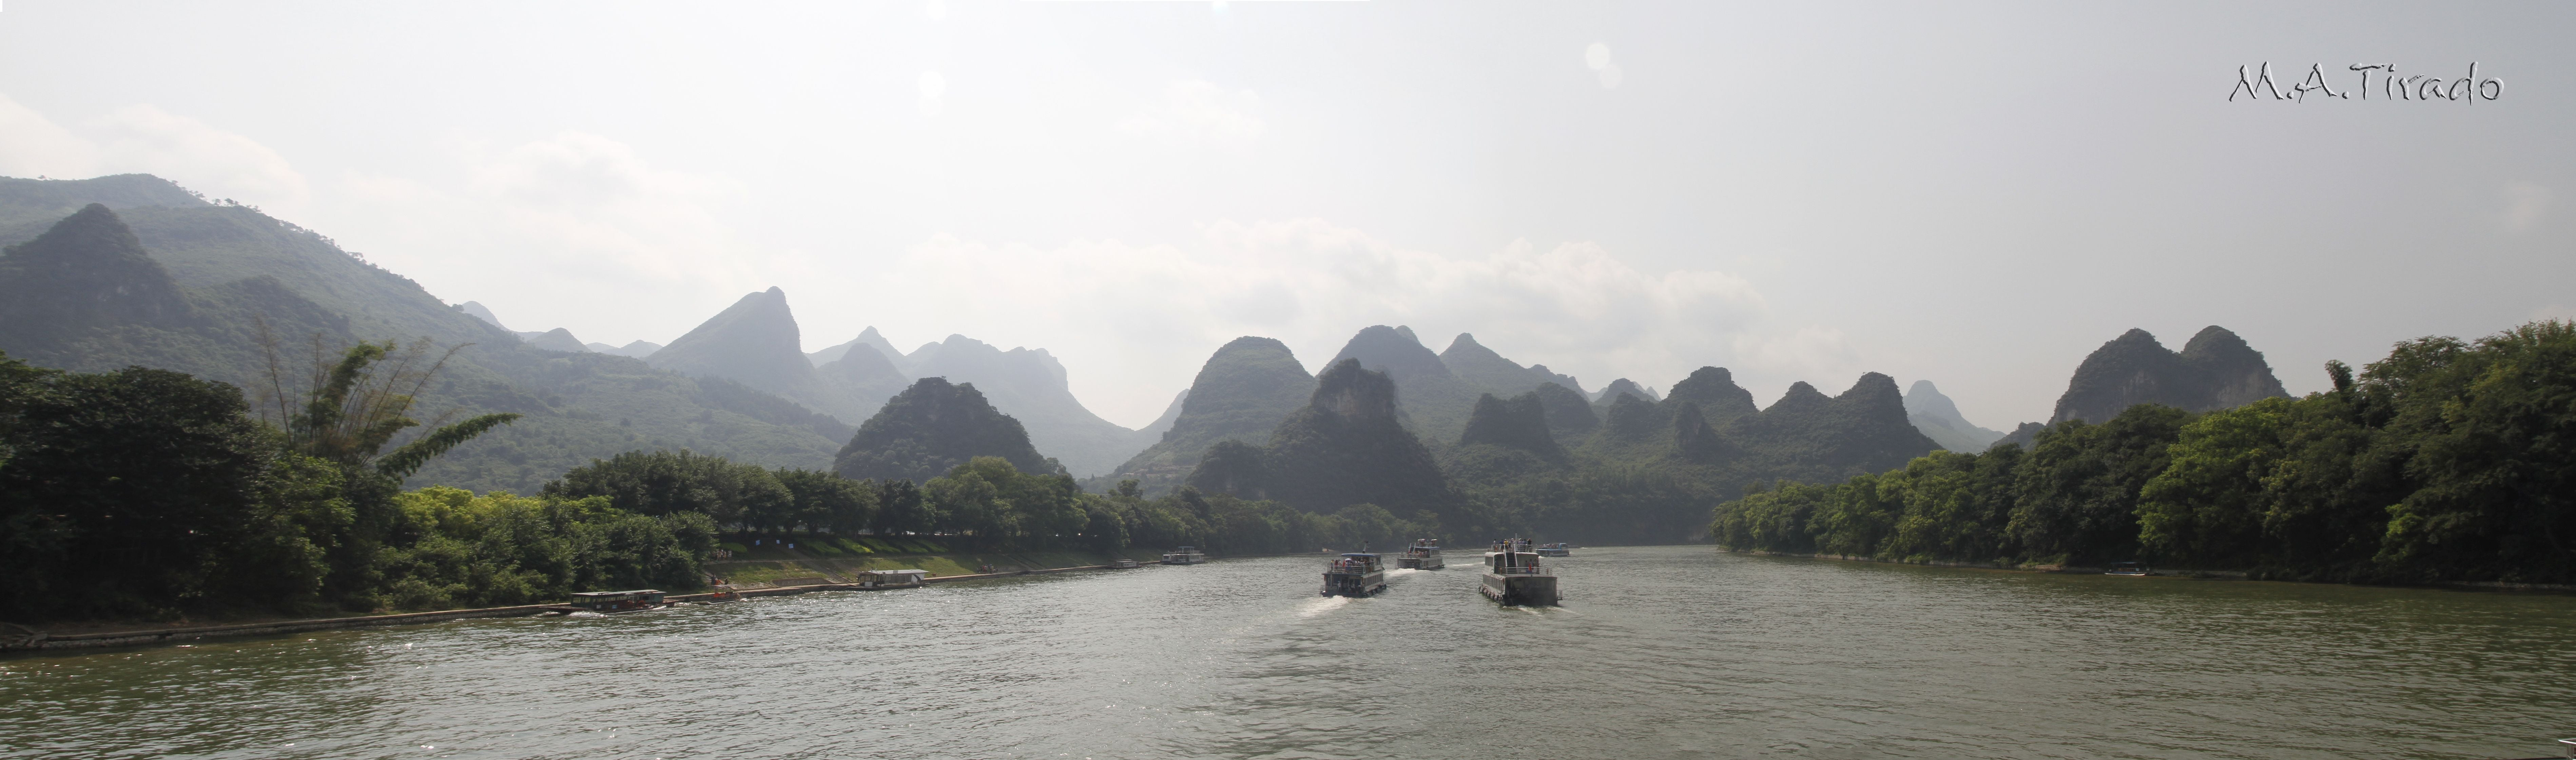 Lago en Guilin